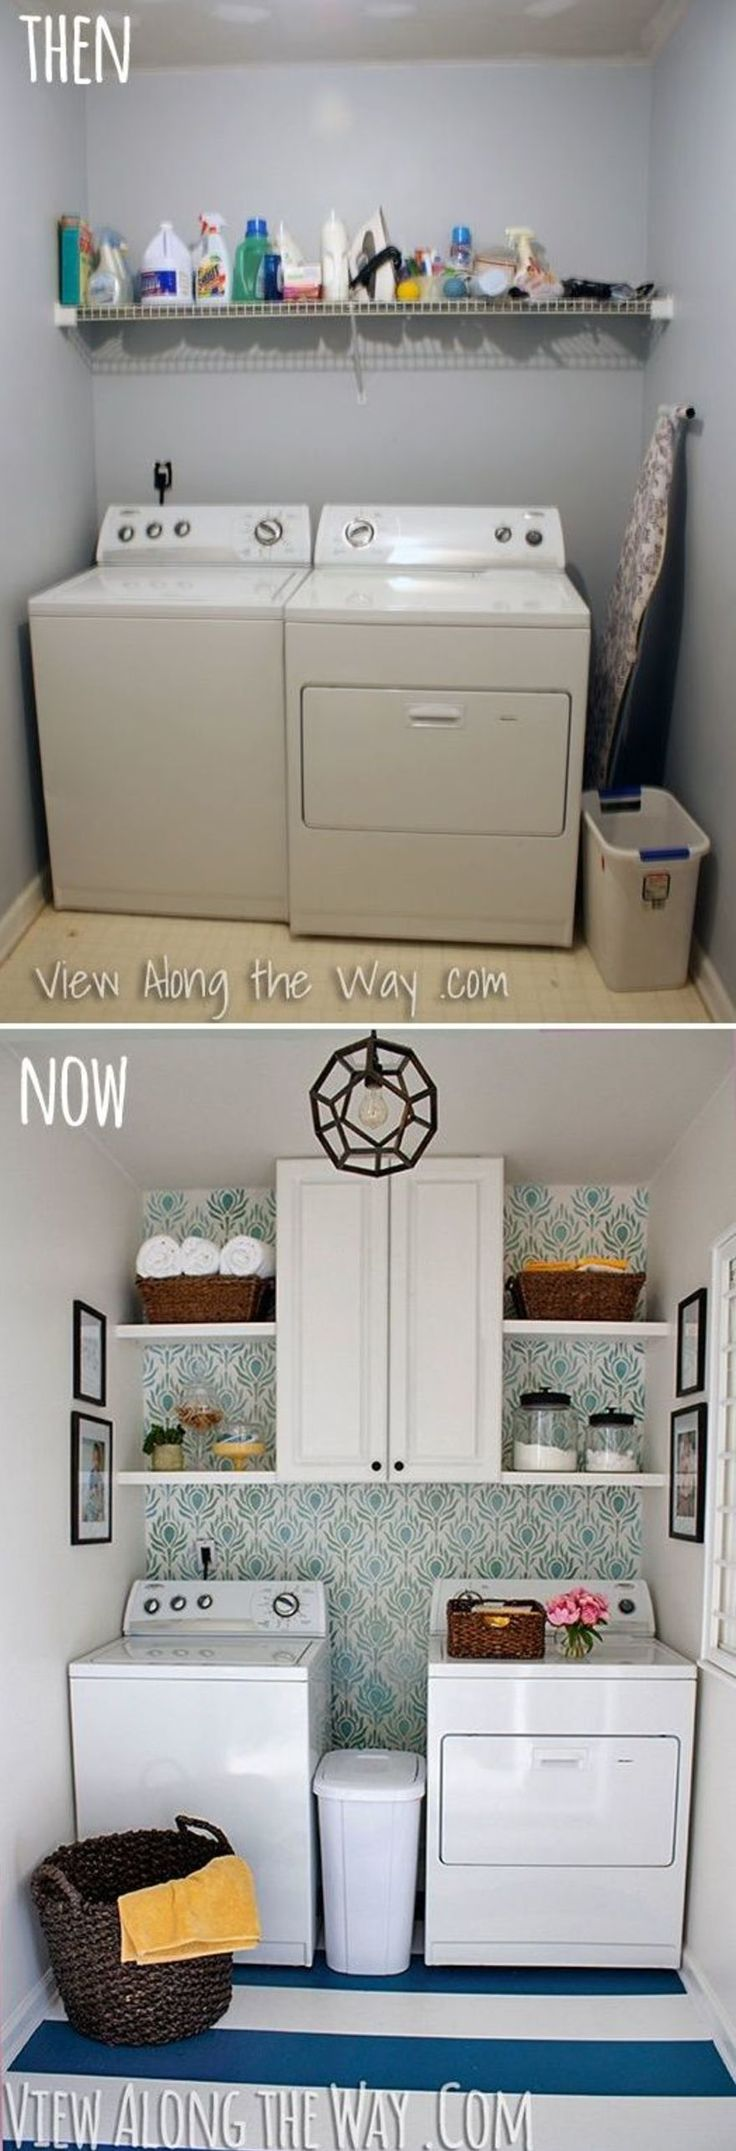 best 25+ laundry room rugs ideas on pinterest | basement laundry